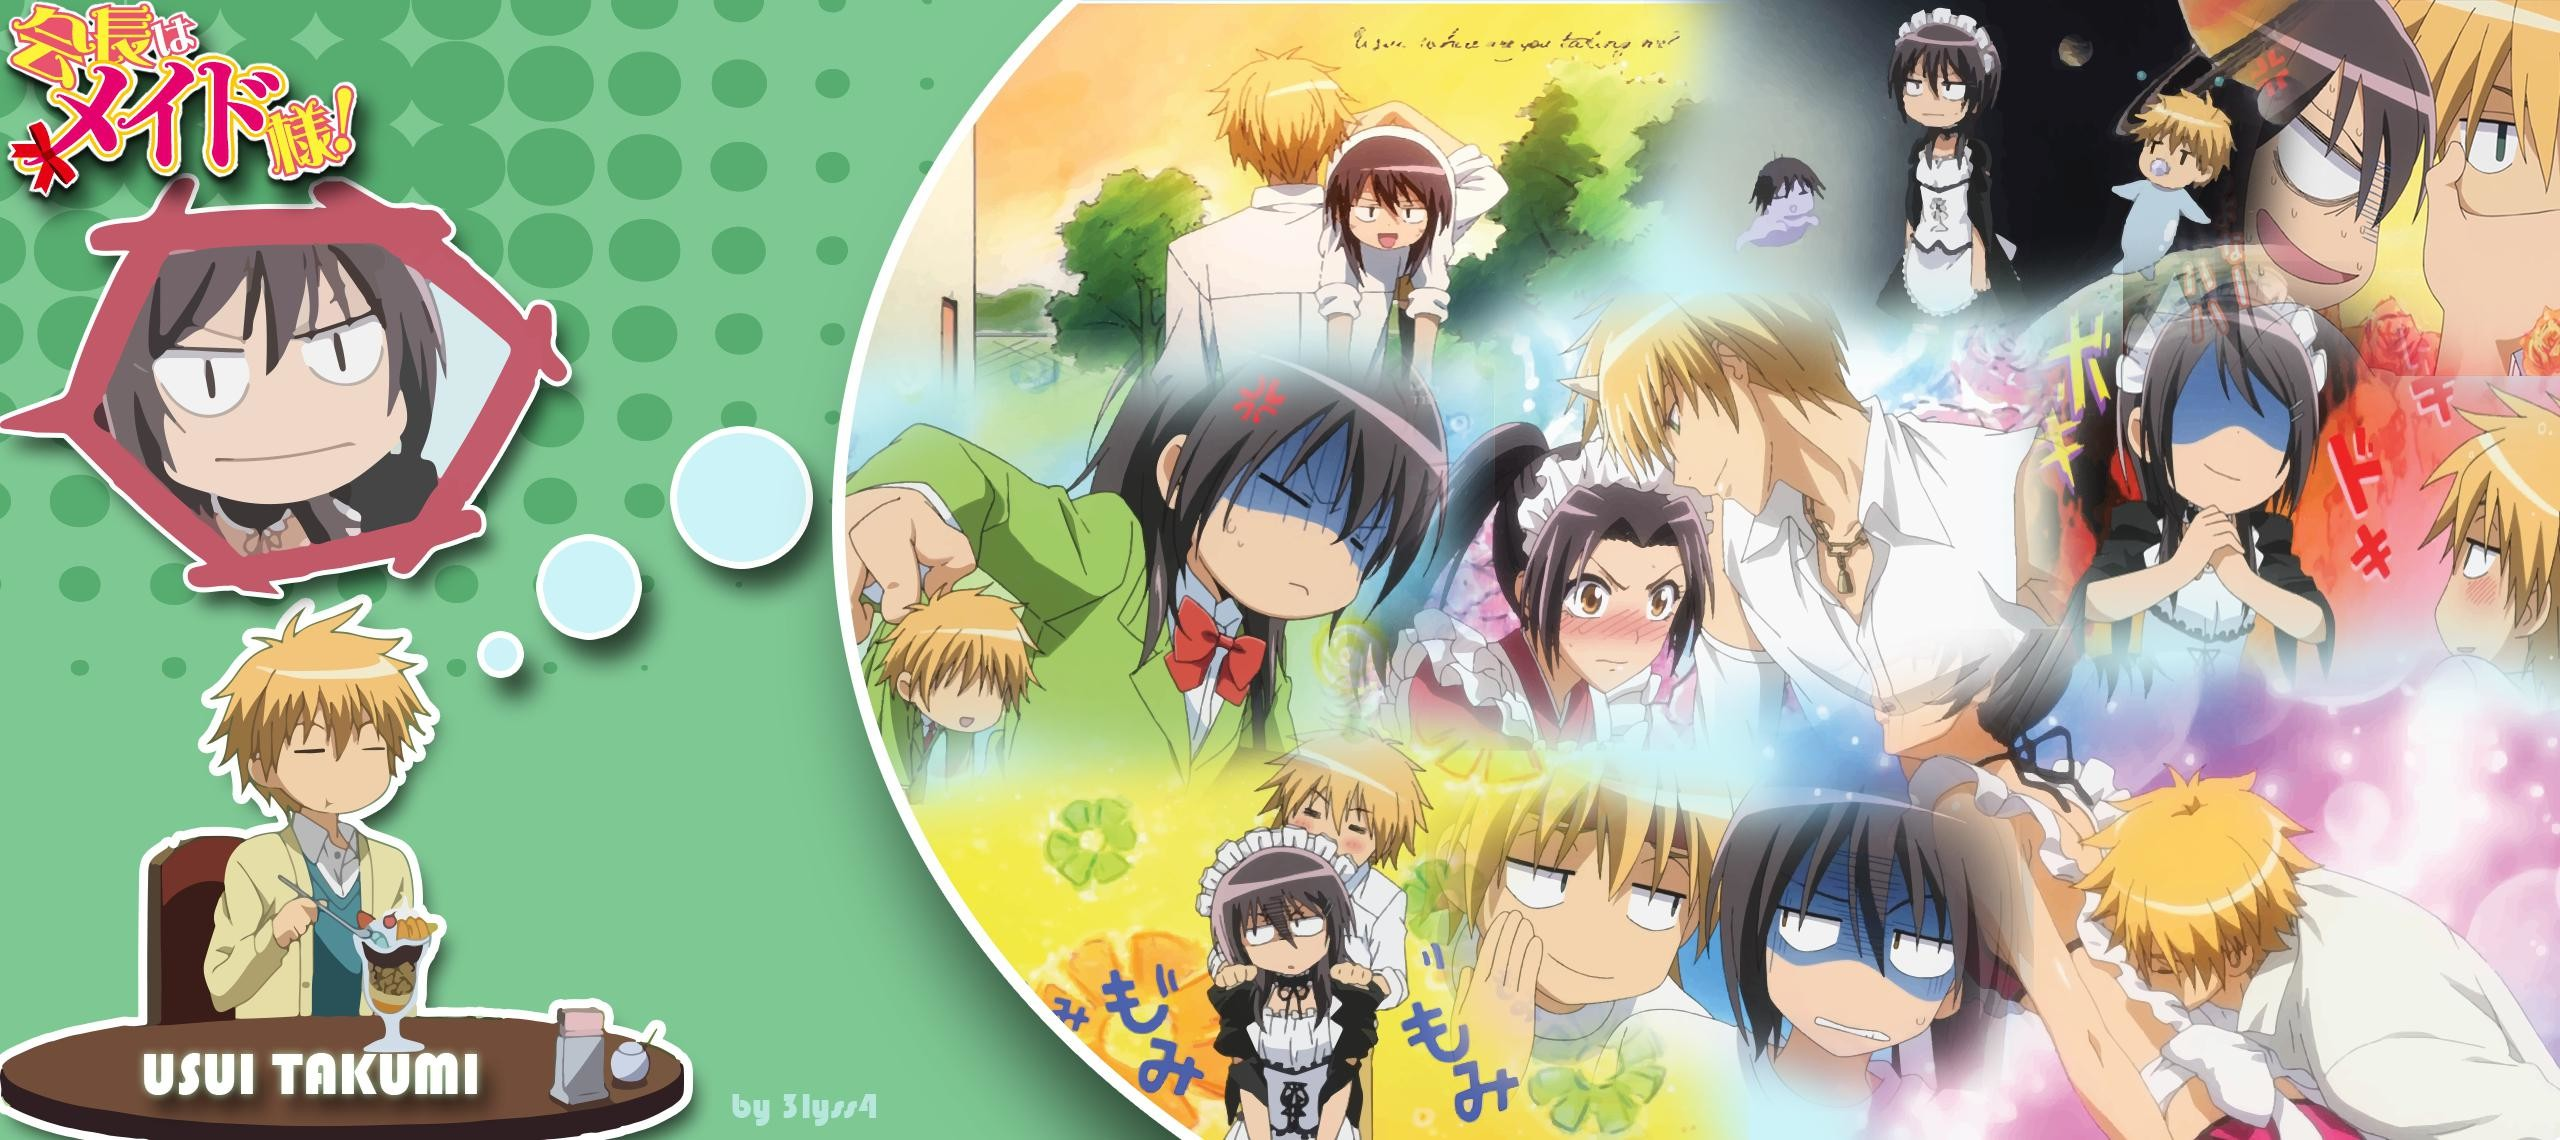 2560x1140 Kaichou wa Maidsama! wallpaper WallpaperUP 2560×1140 Maid Sama Wallpapers  (41 Wallpapers)